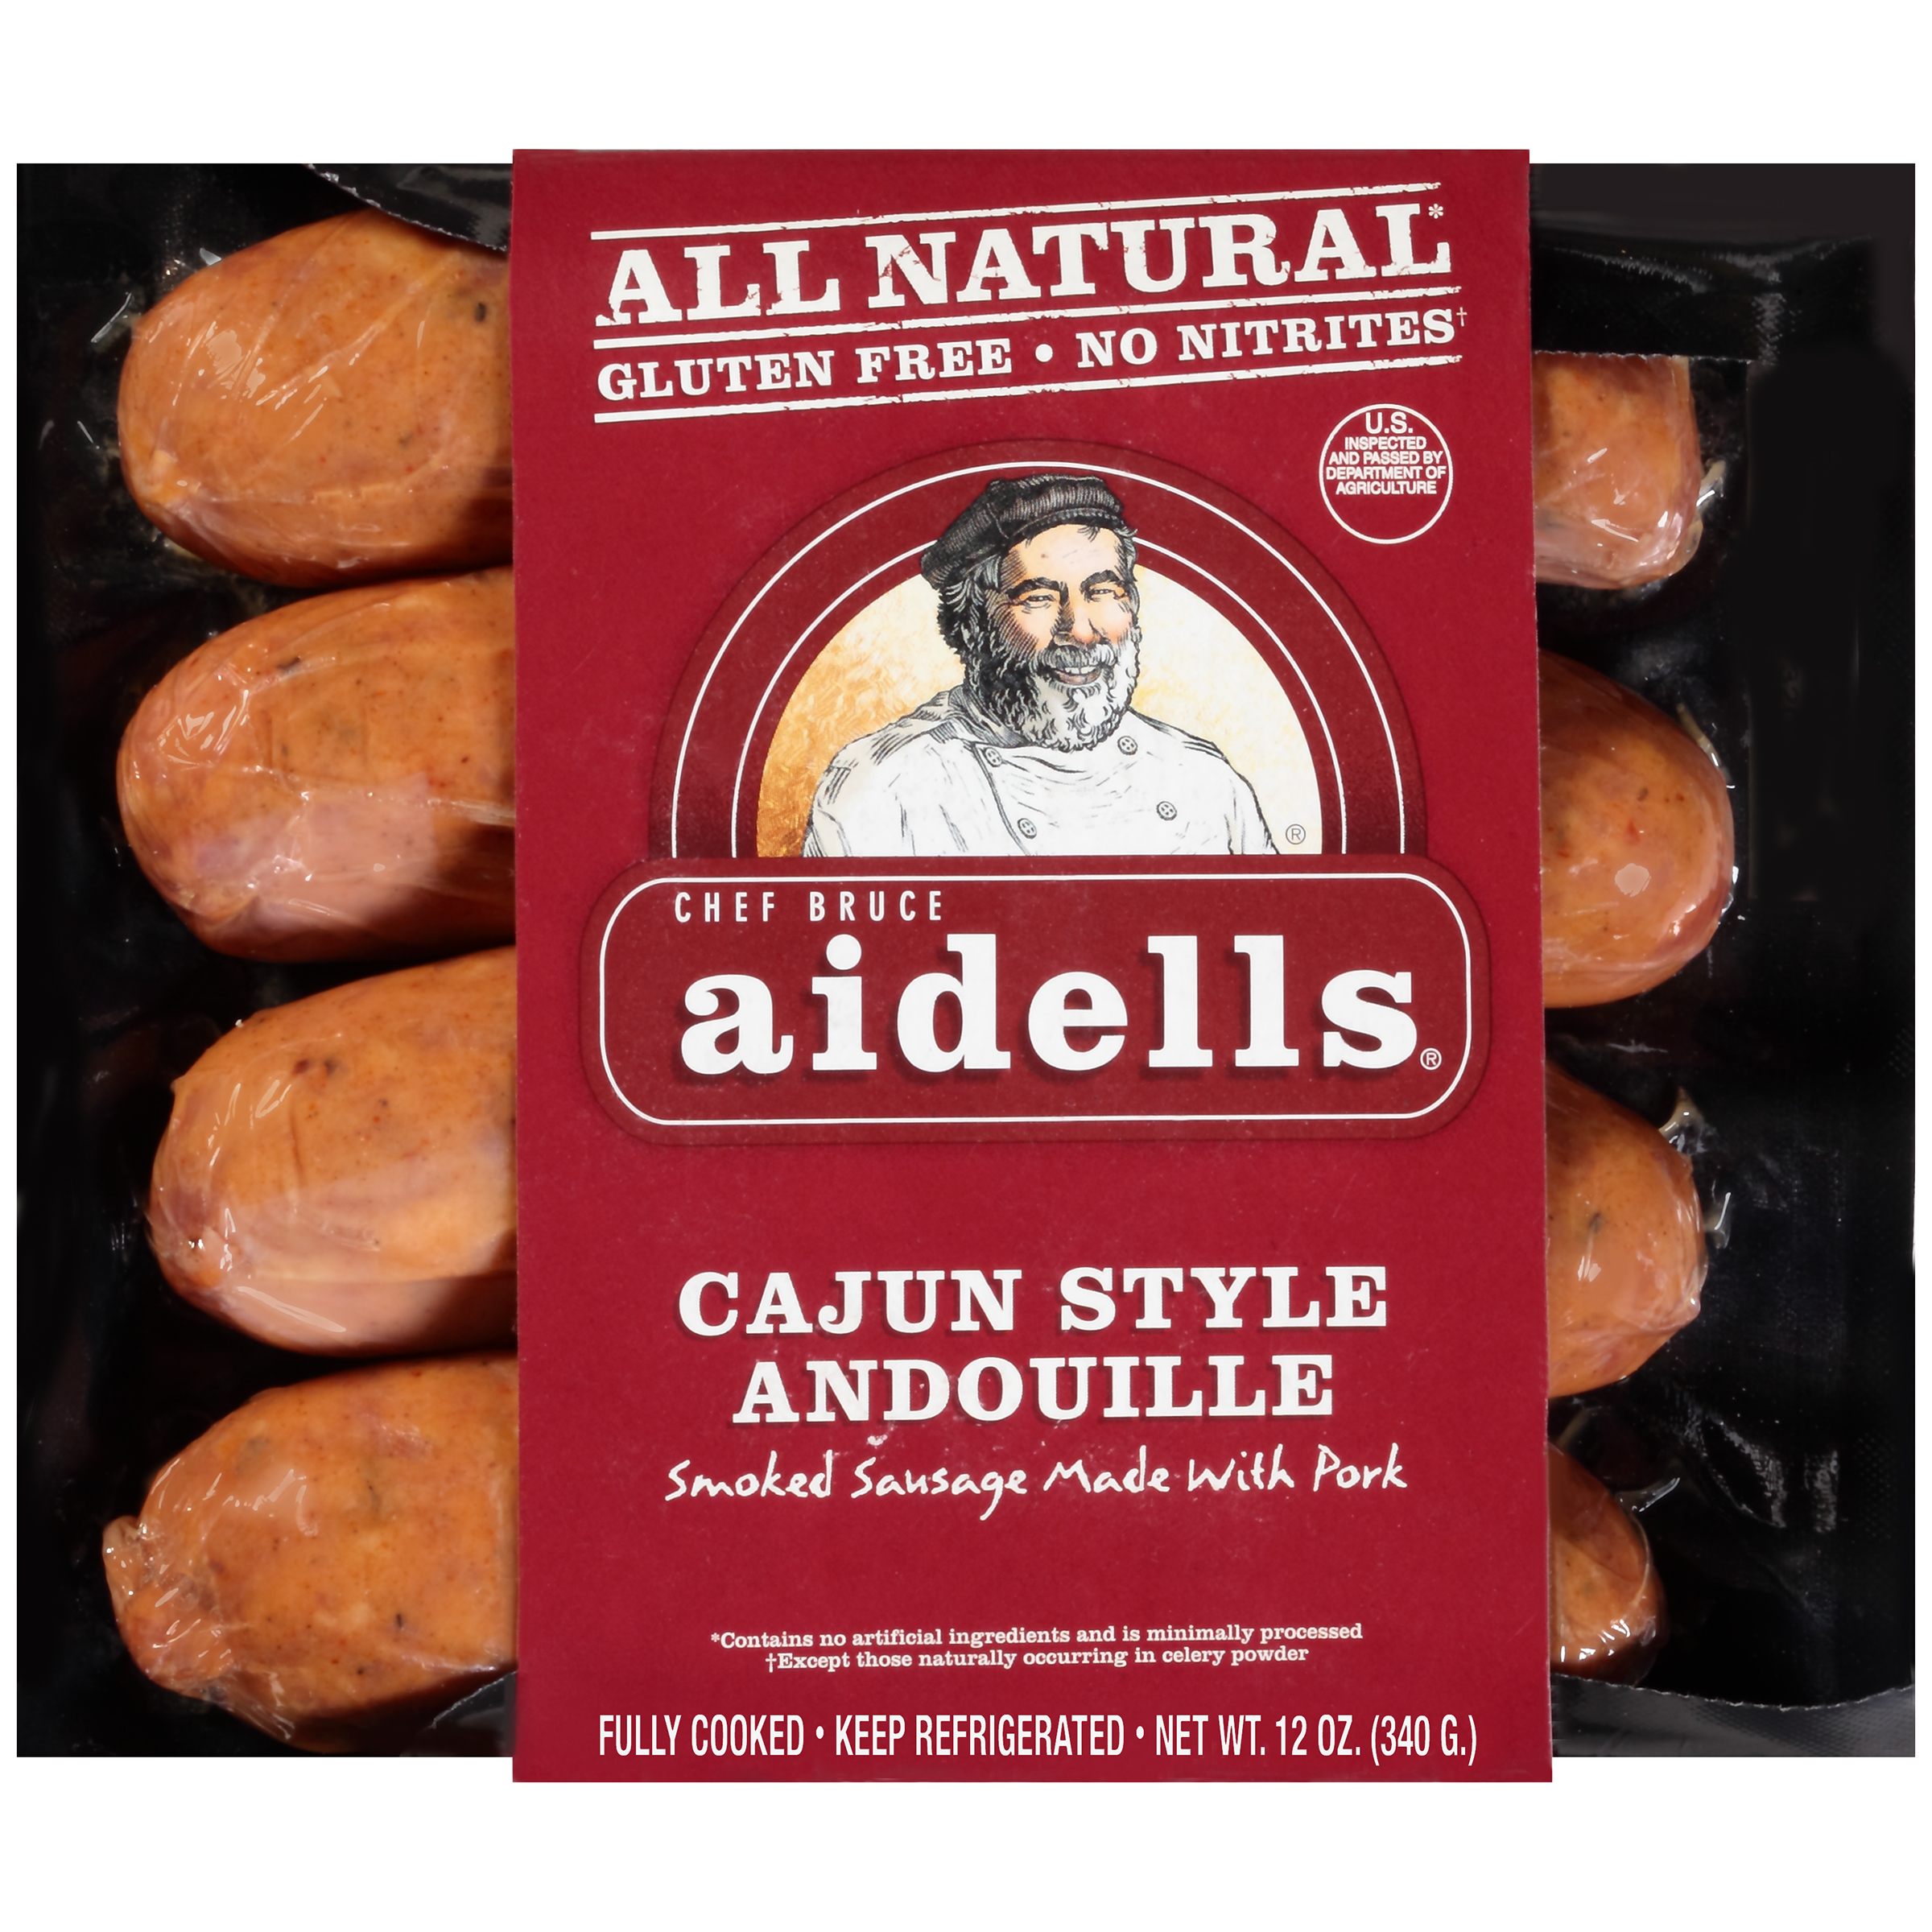 All Natural Cajun Style Andouille Smoked Sausage Made With Pork